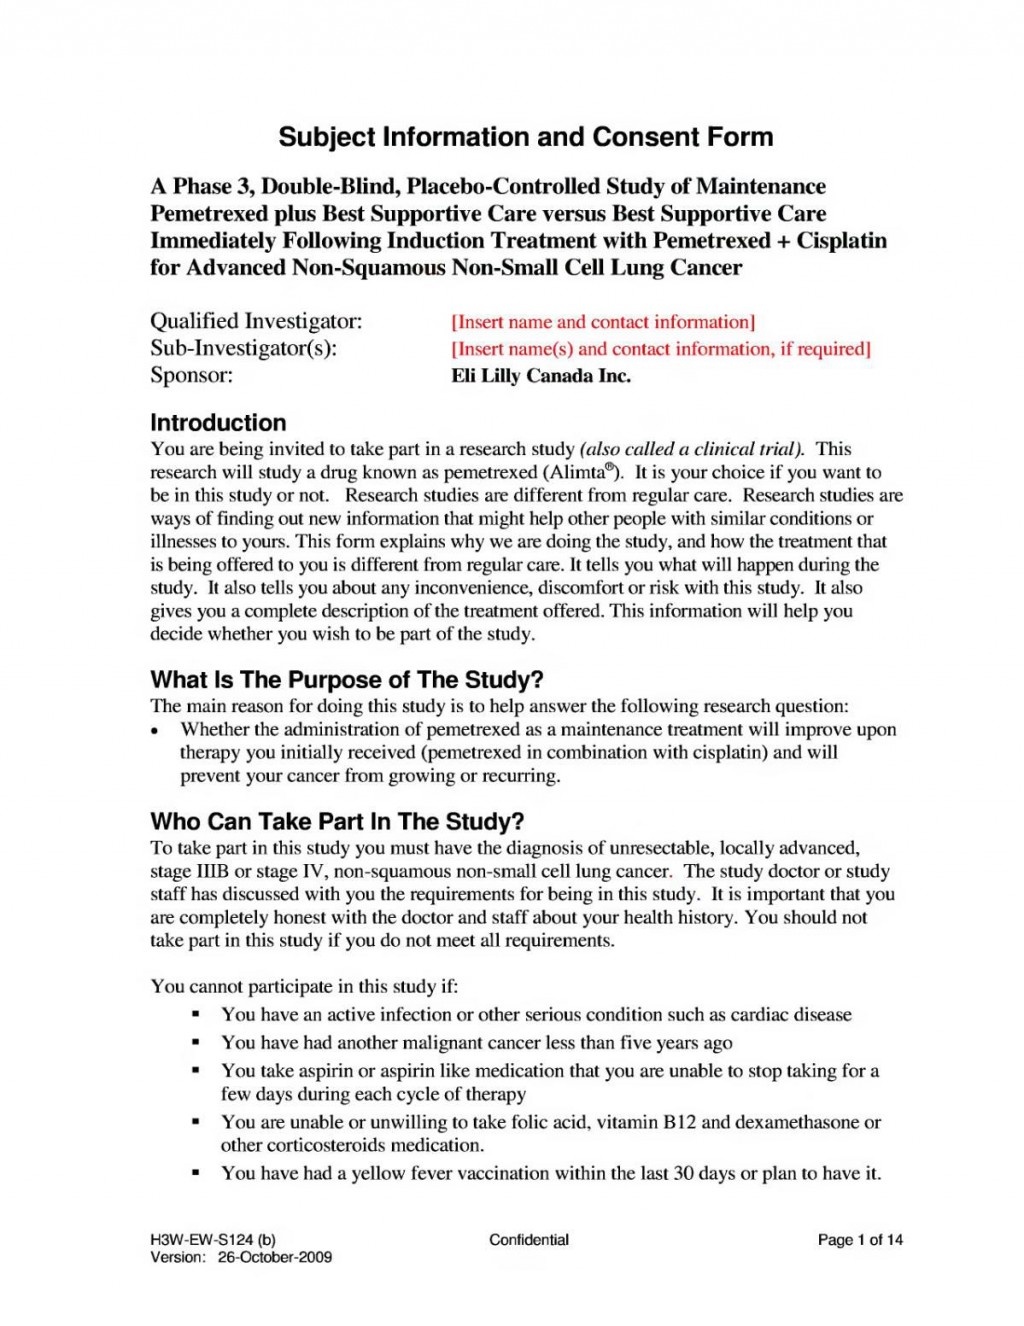 007 Awful Medical Treatment Authorization And Consent Form Template Idea Large